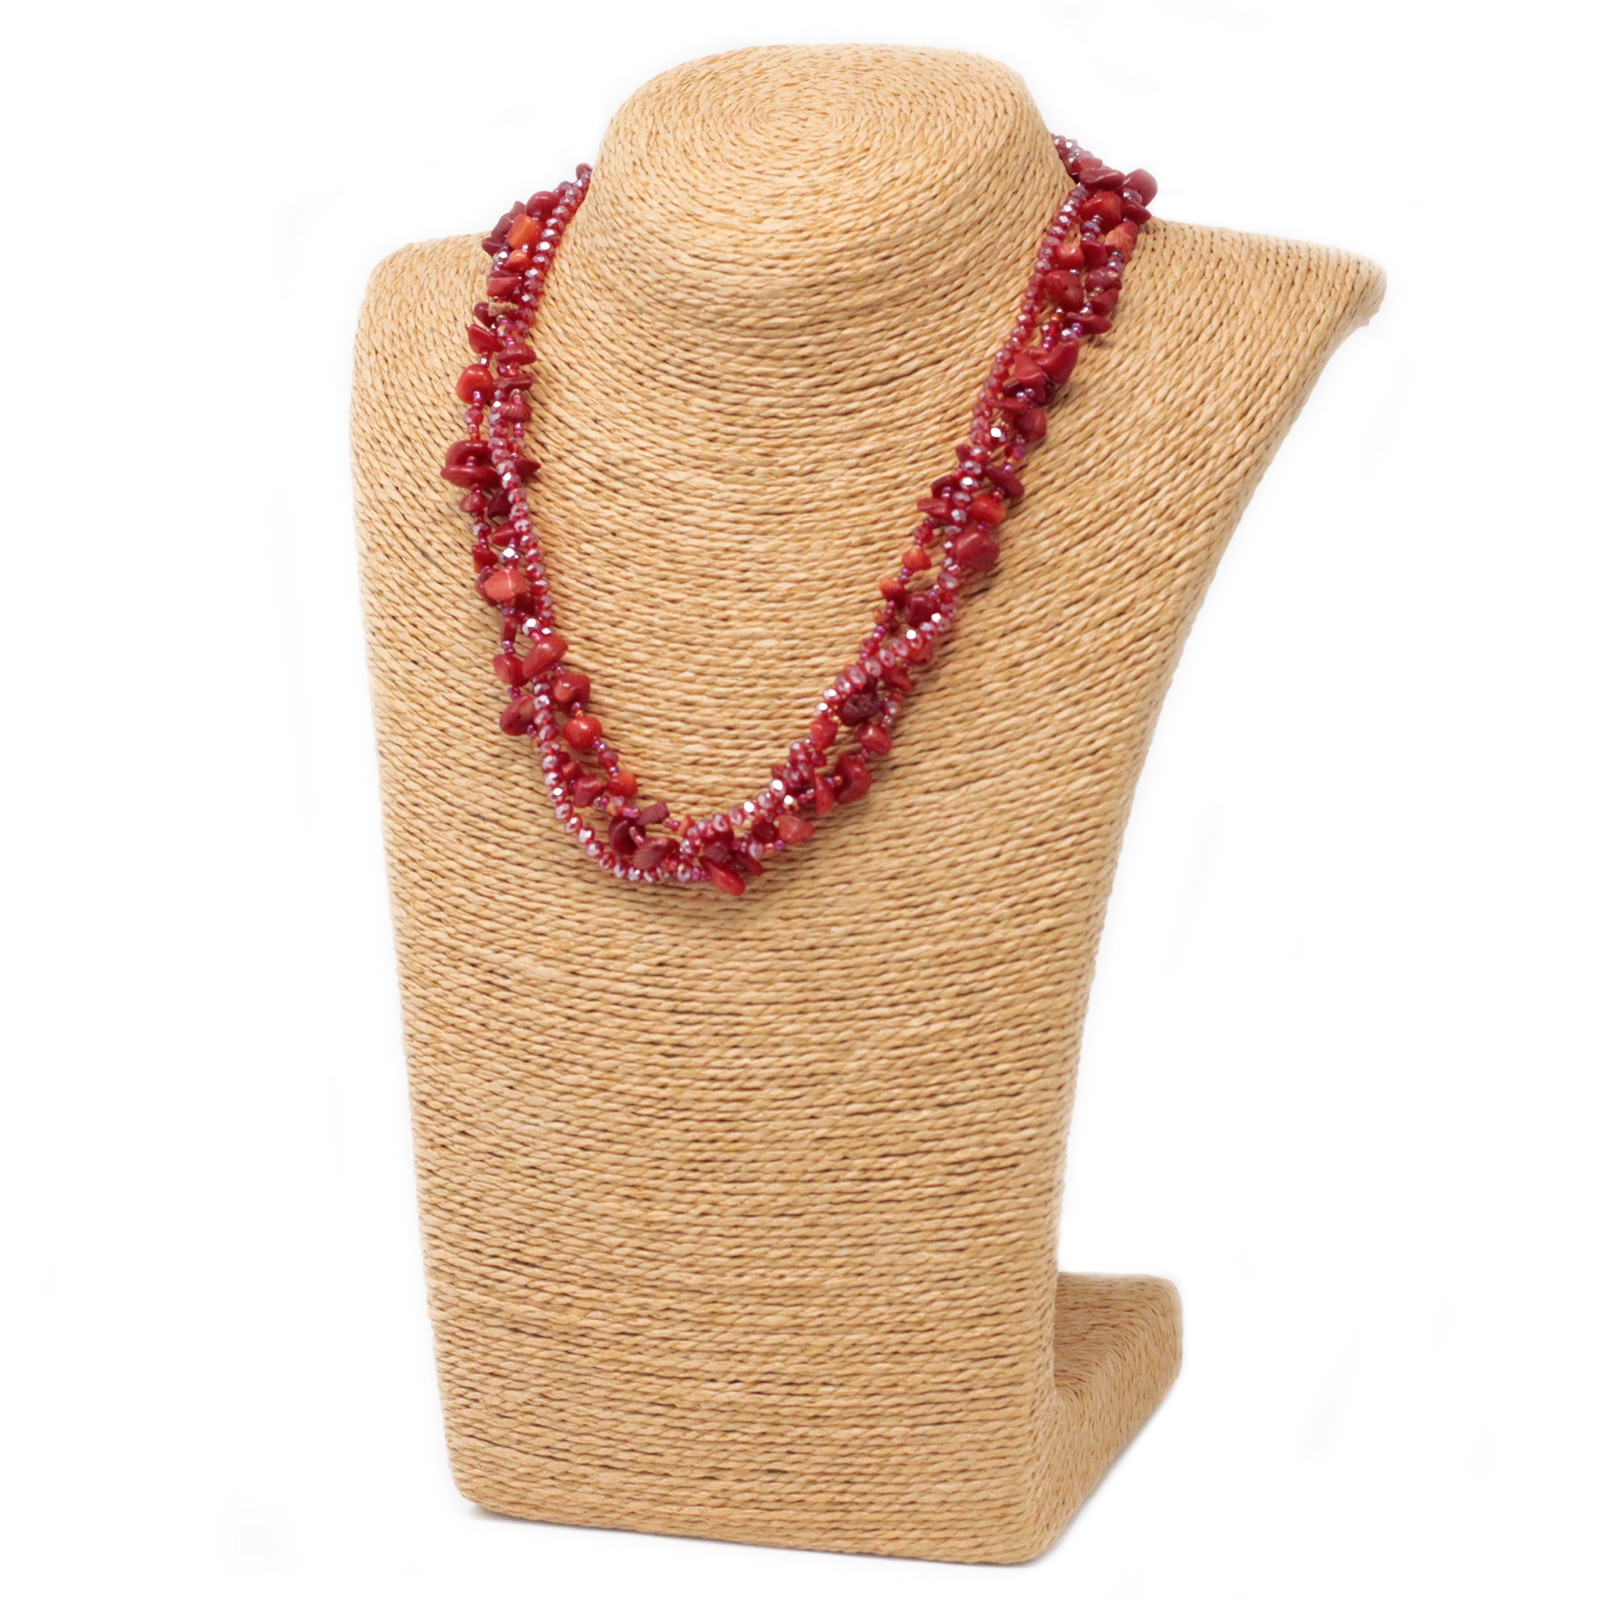 Chipstone & Bead Necklace -Red Coral